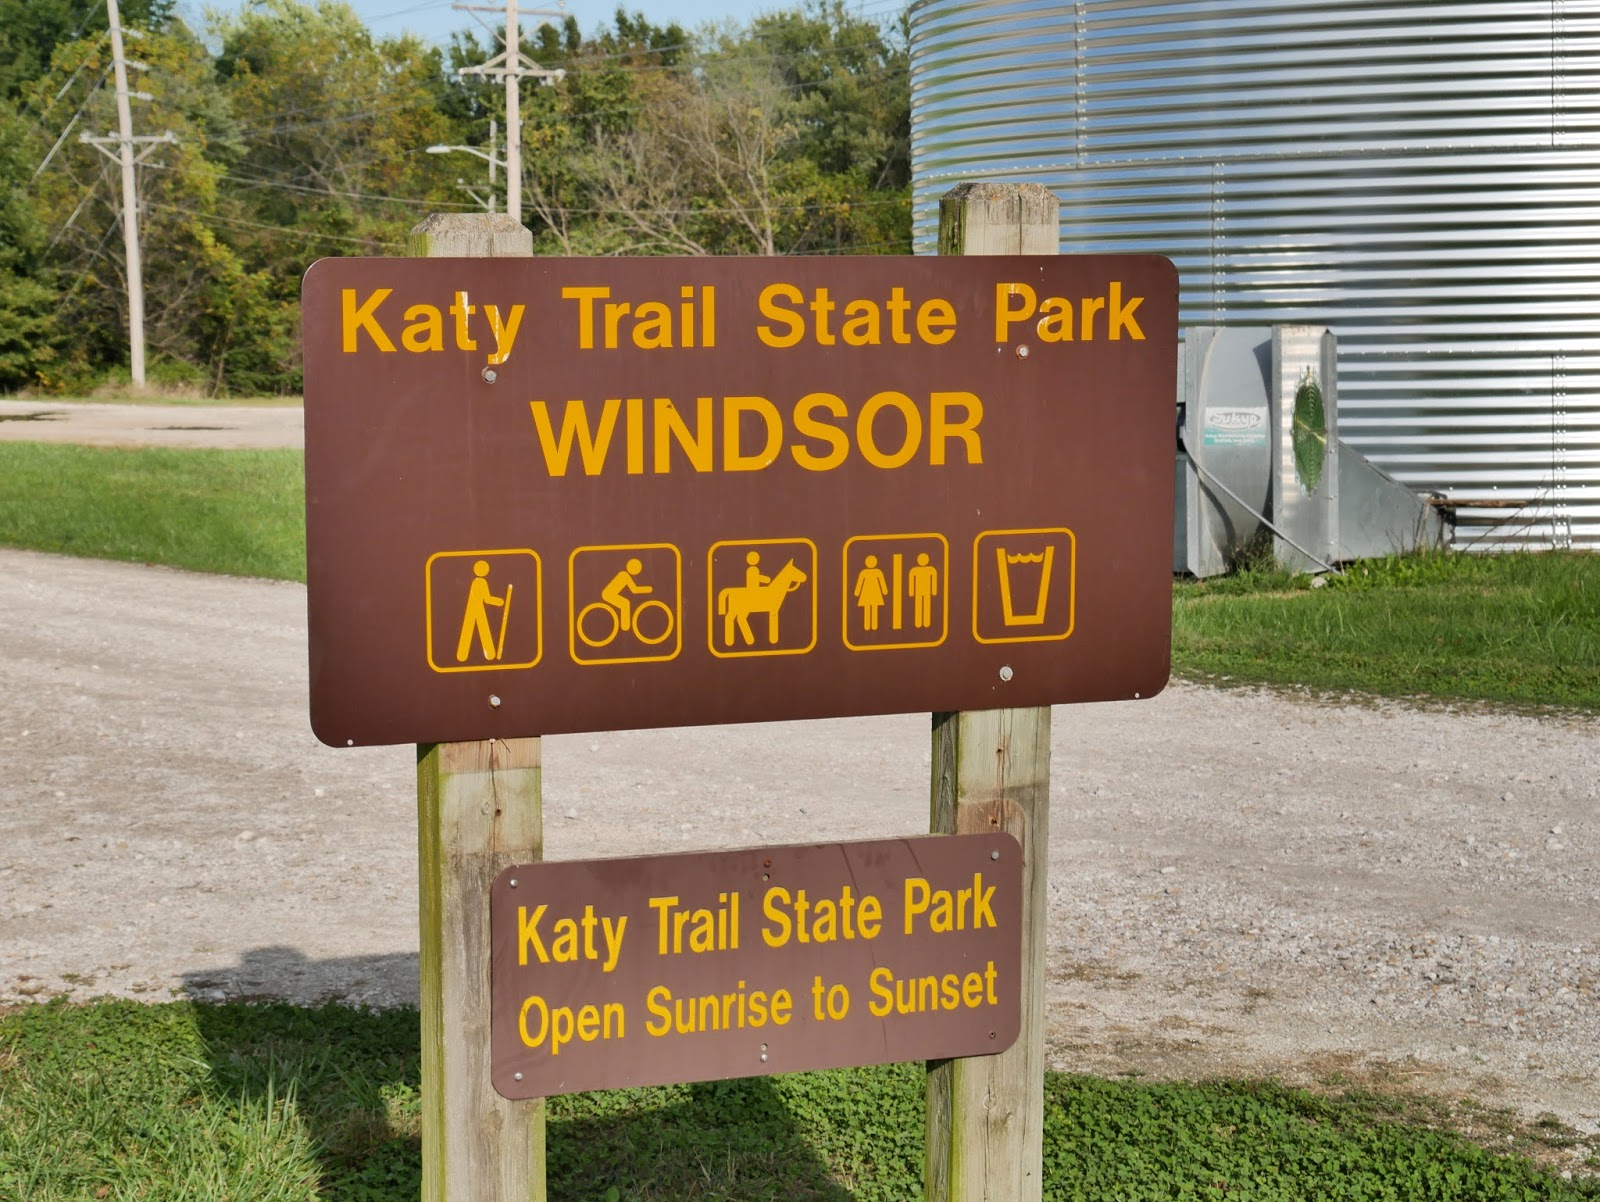 We Continued Our October 2017 Bike Ride On The Katy Trail State Park By Riding Segment From Windsor To Calhoun Missouri While Mileage